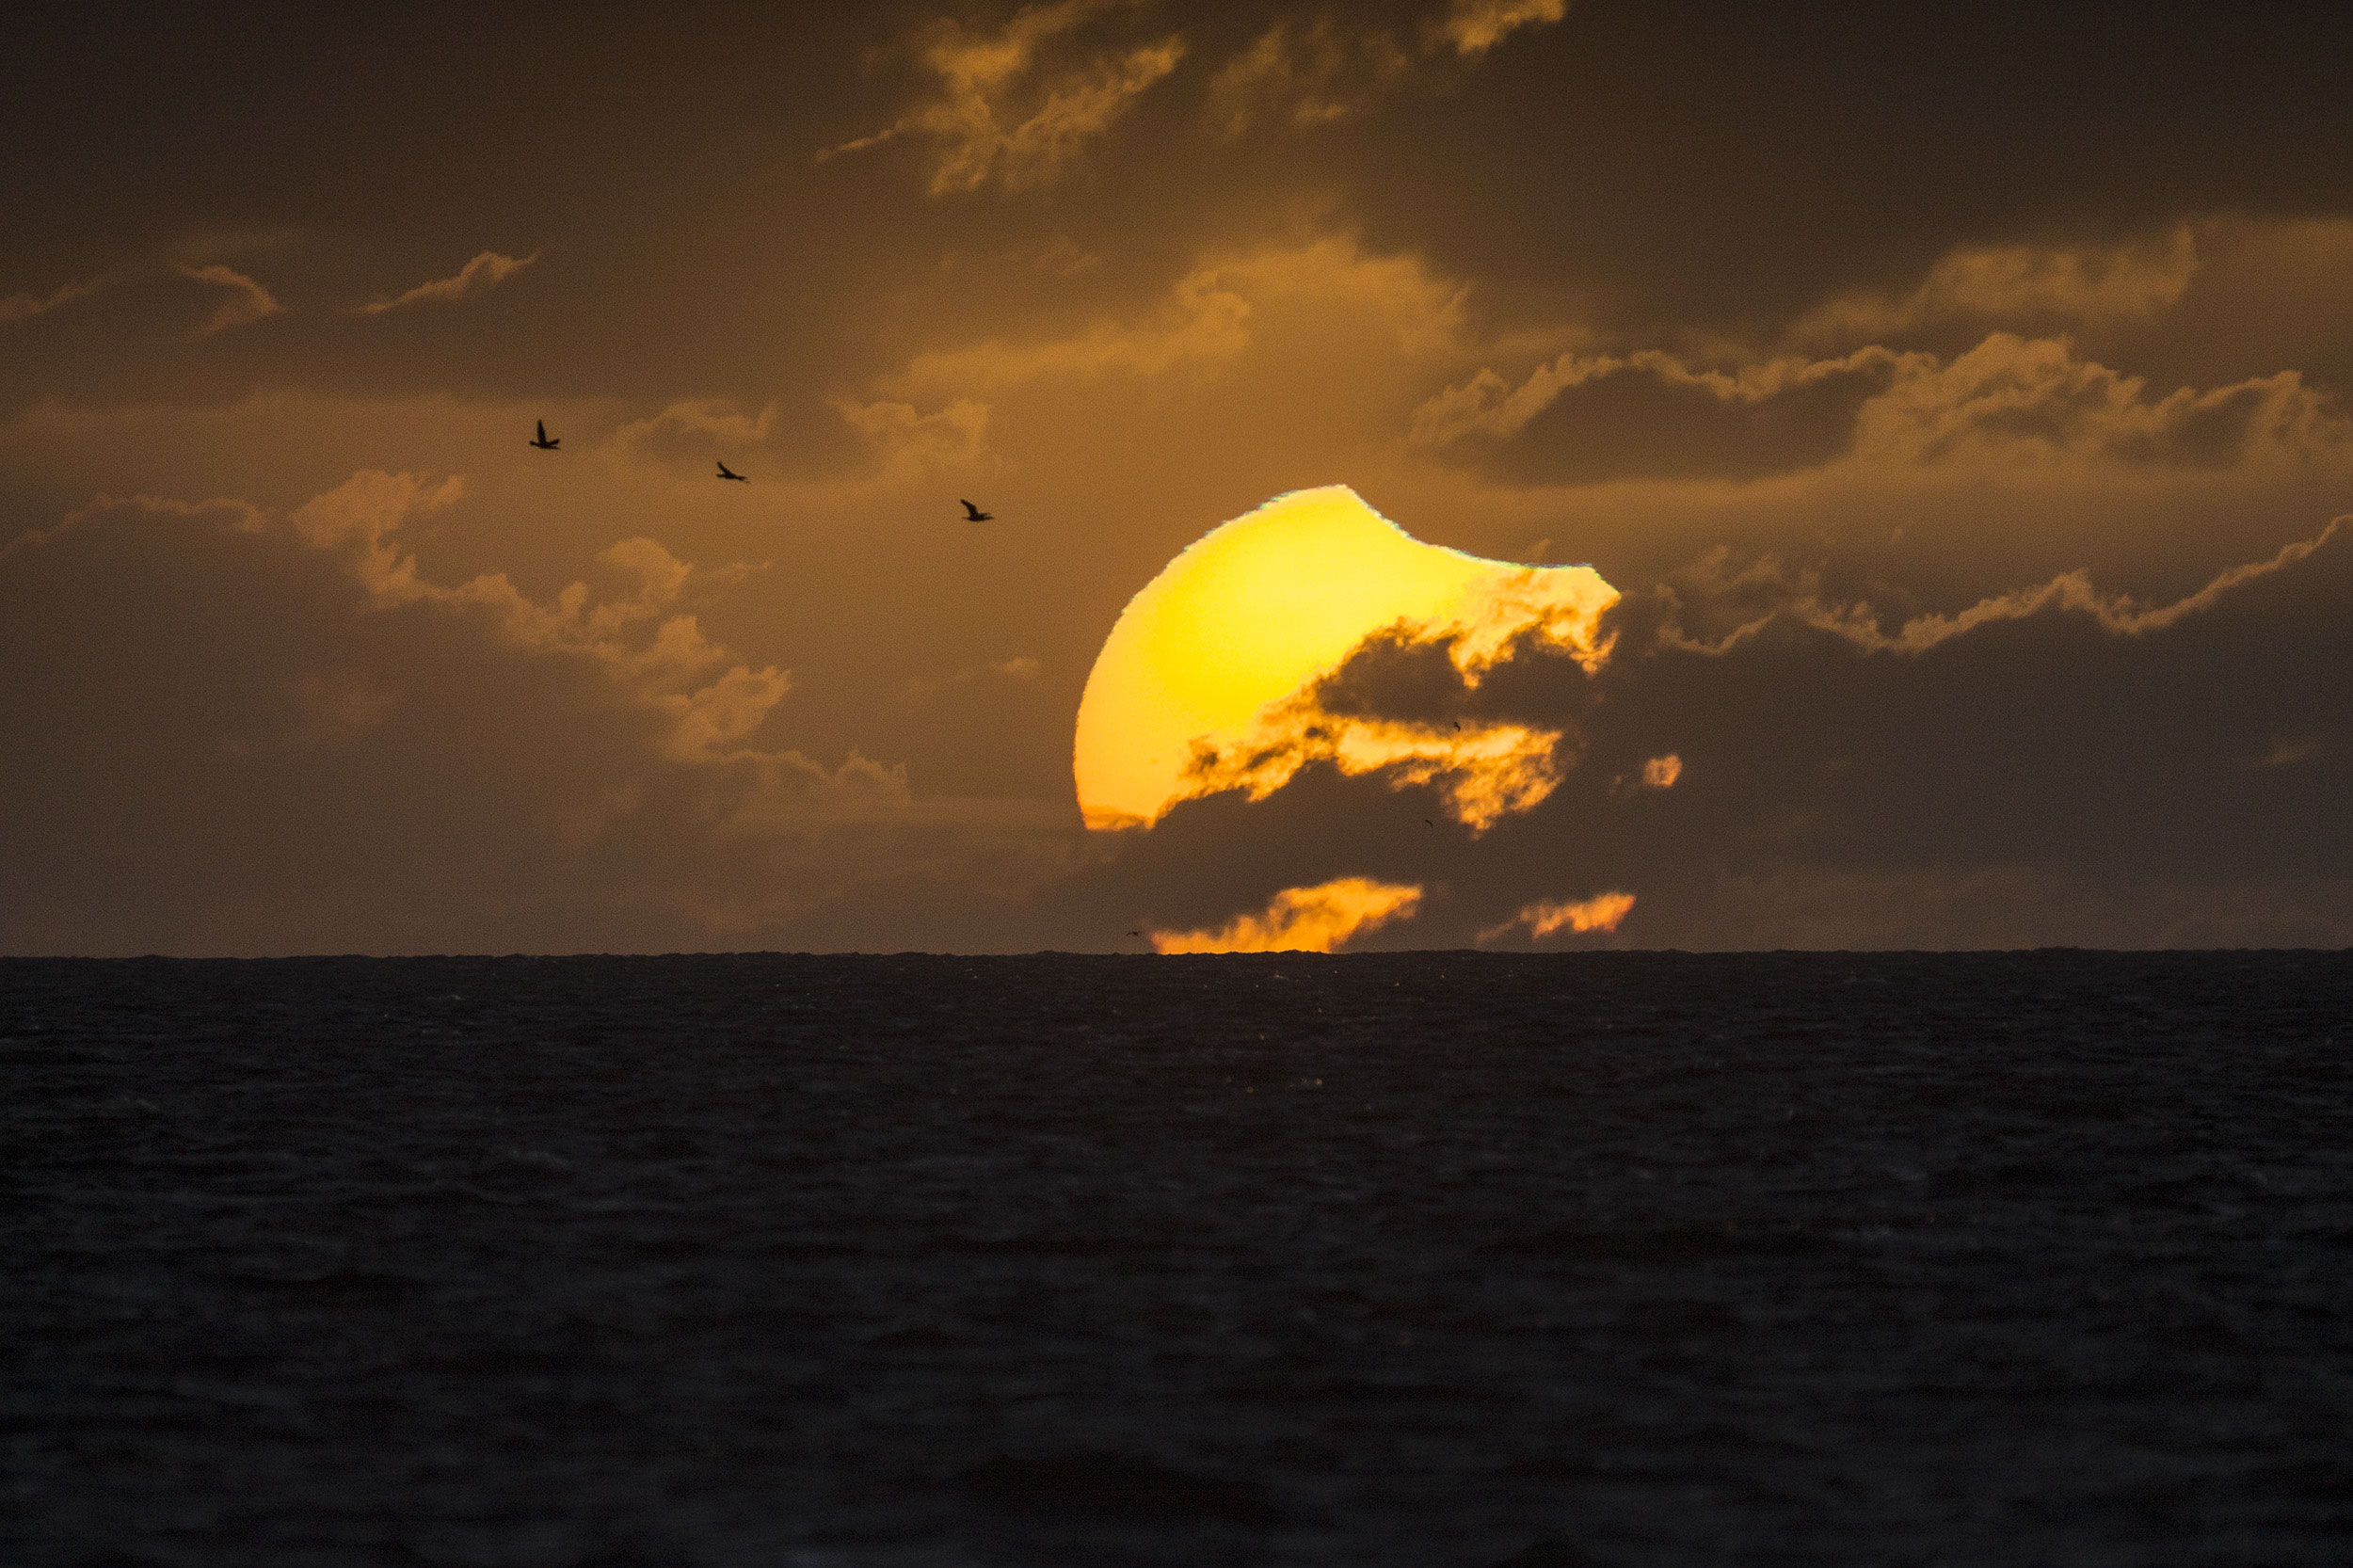 Apod 2014 April 30 A Partially Eclipsed Setting Sun